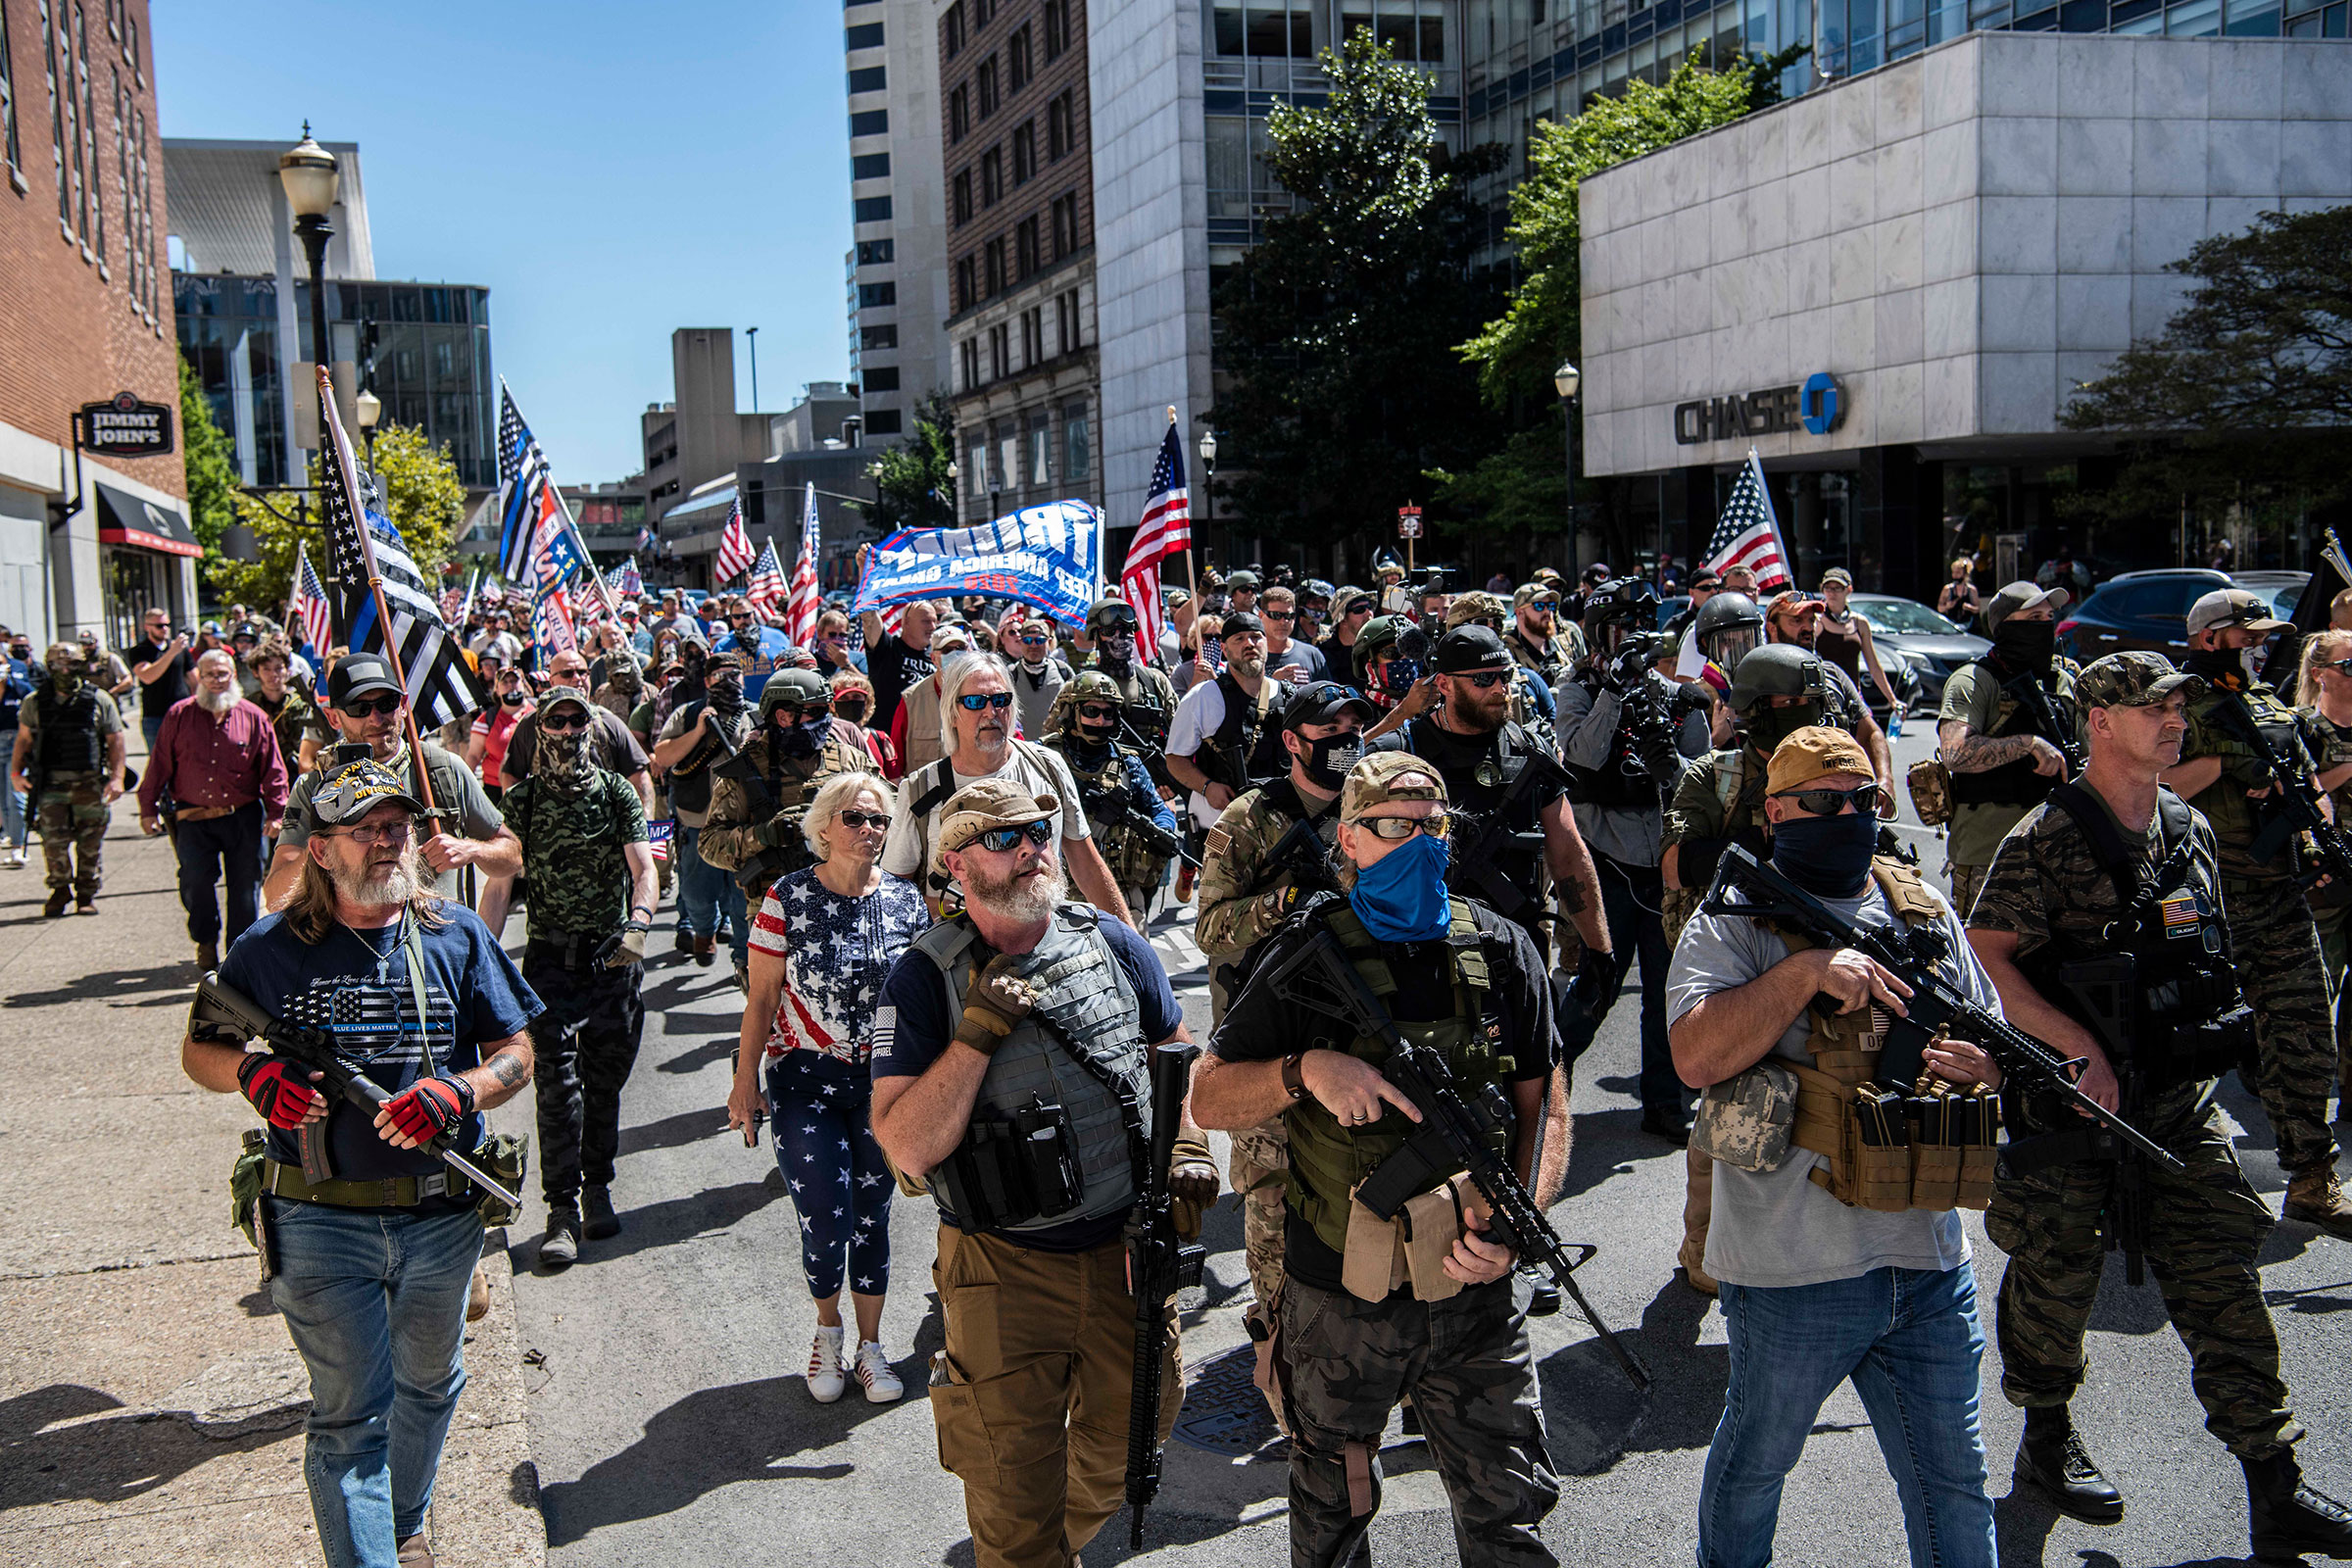 Armed pro-trump militia members during a demonstartion on the day of the Kentucky Derby in Louisville, Ky., September 5, 2020.